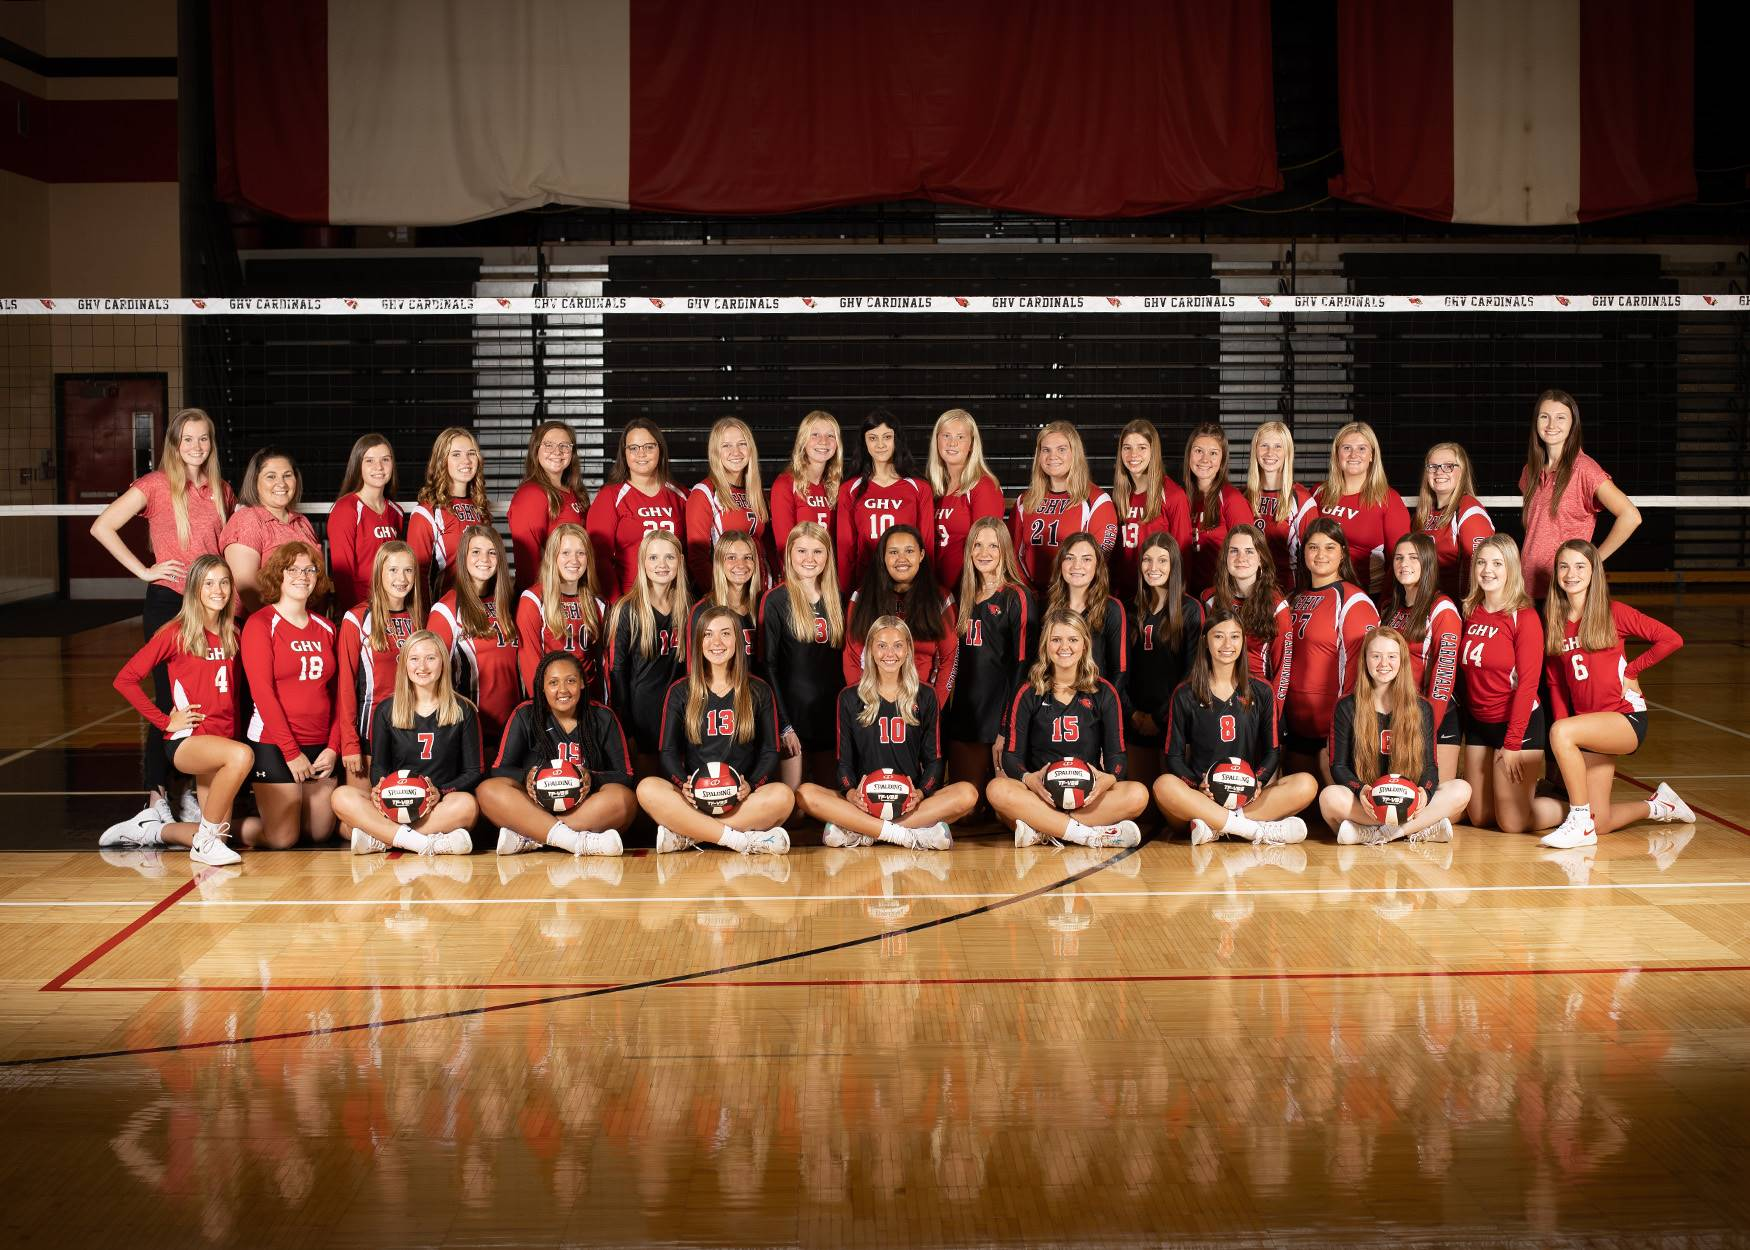 Girls volleyball players posing for a group photo